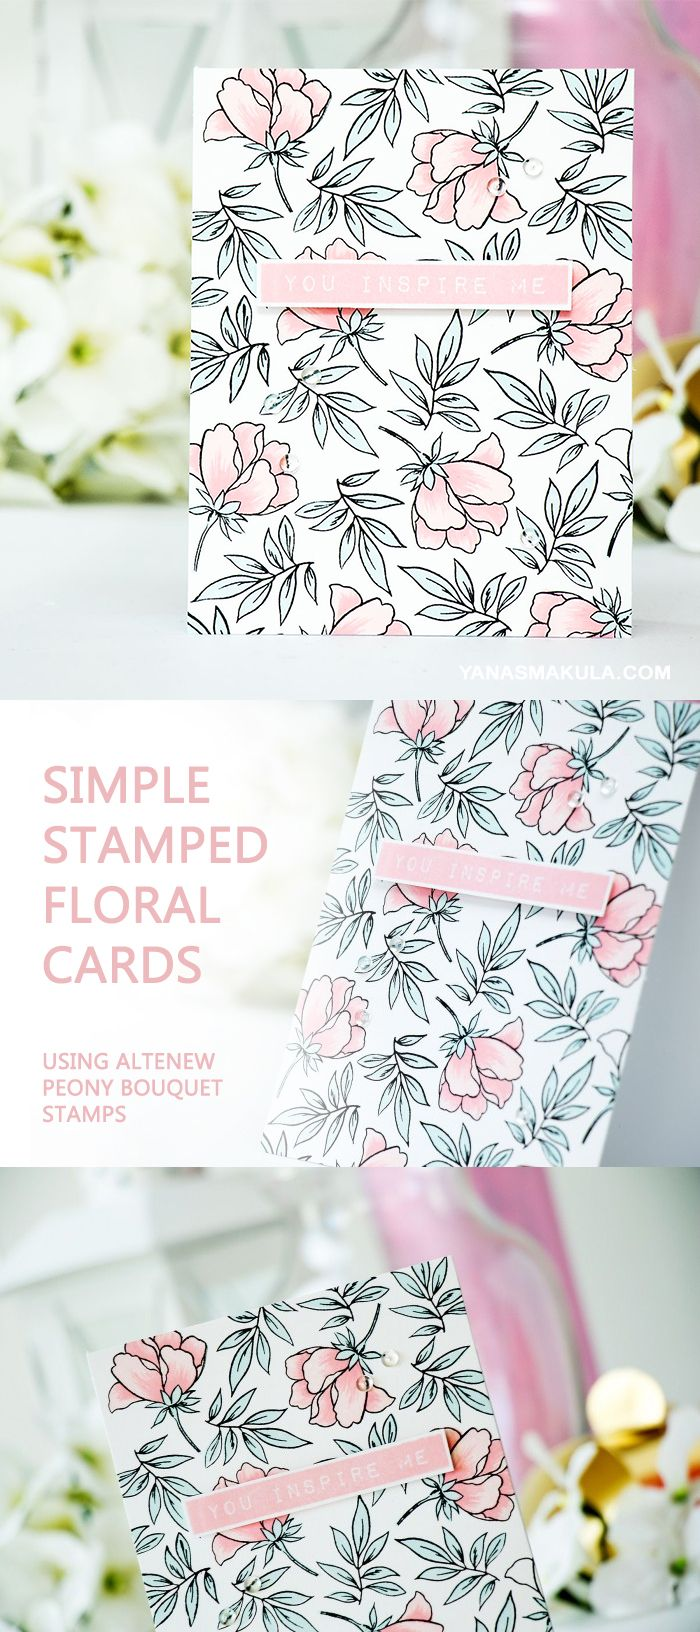 Create Simple Stamped Floral Cards Using Altenew Peony Bouquet Stamps. To see more card examples and learn more, please visit http://www.yanasmakula.com/?p=52411